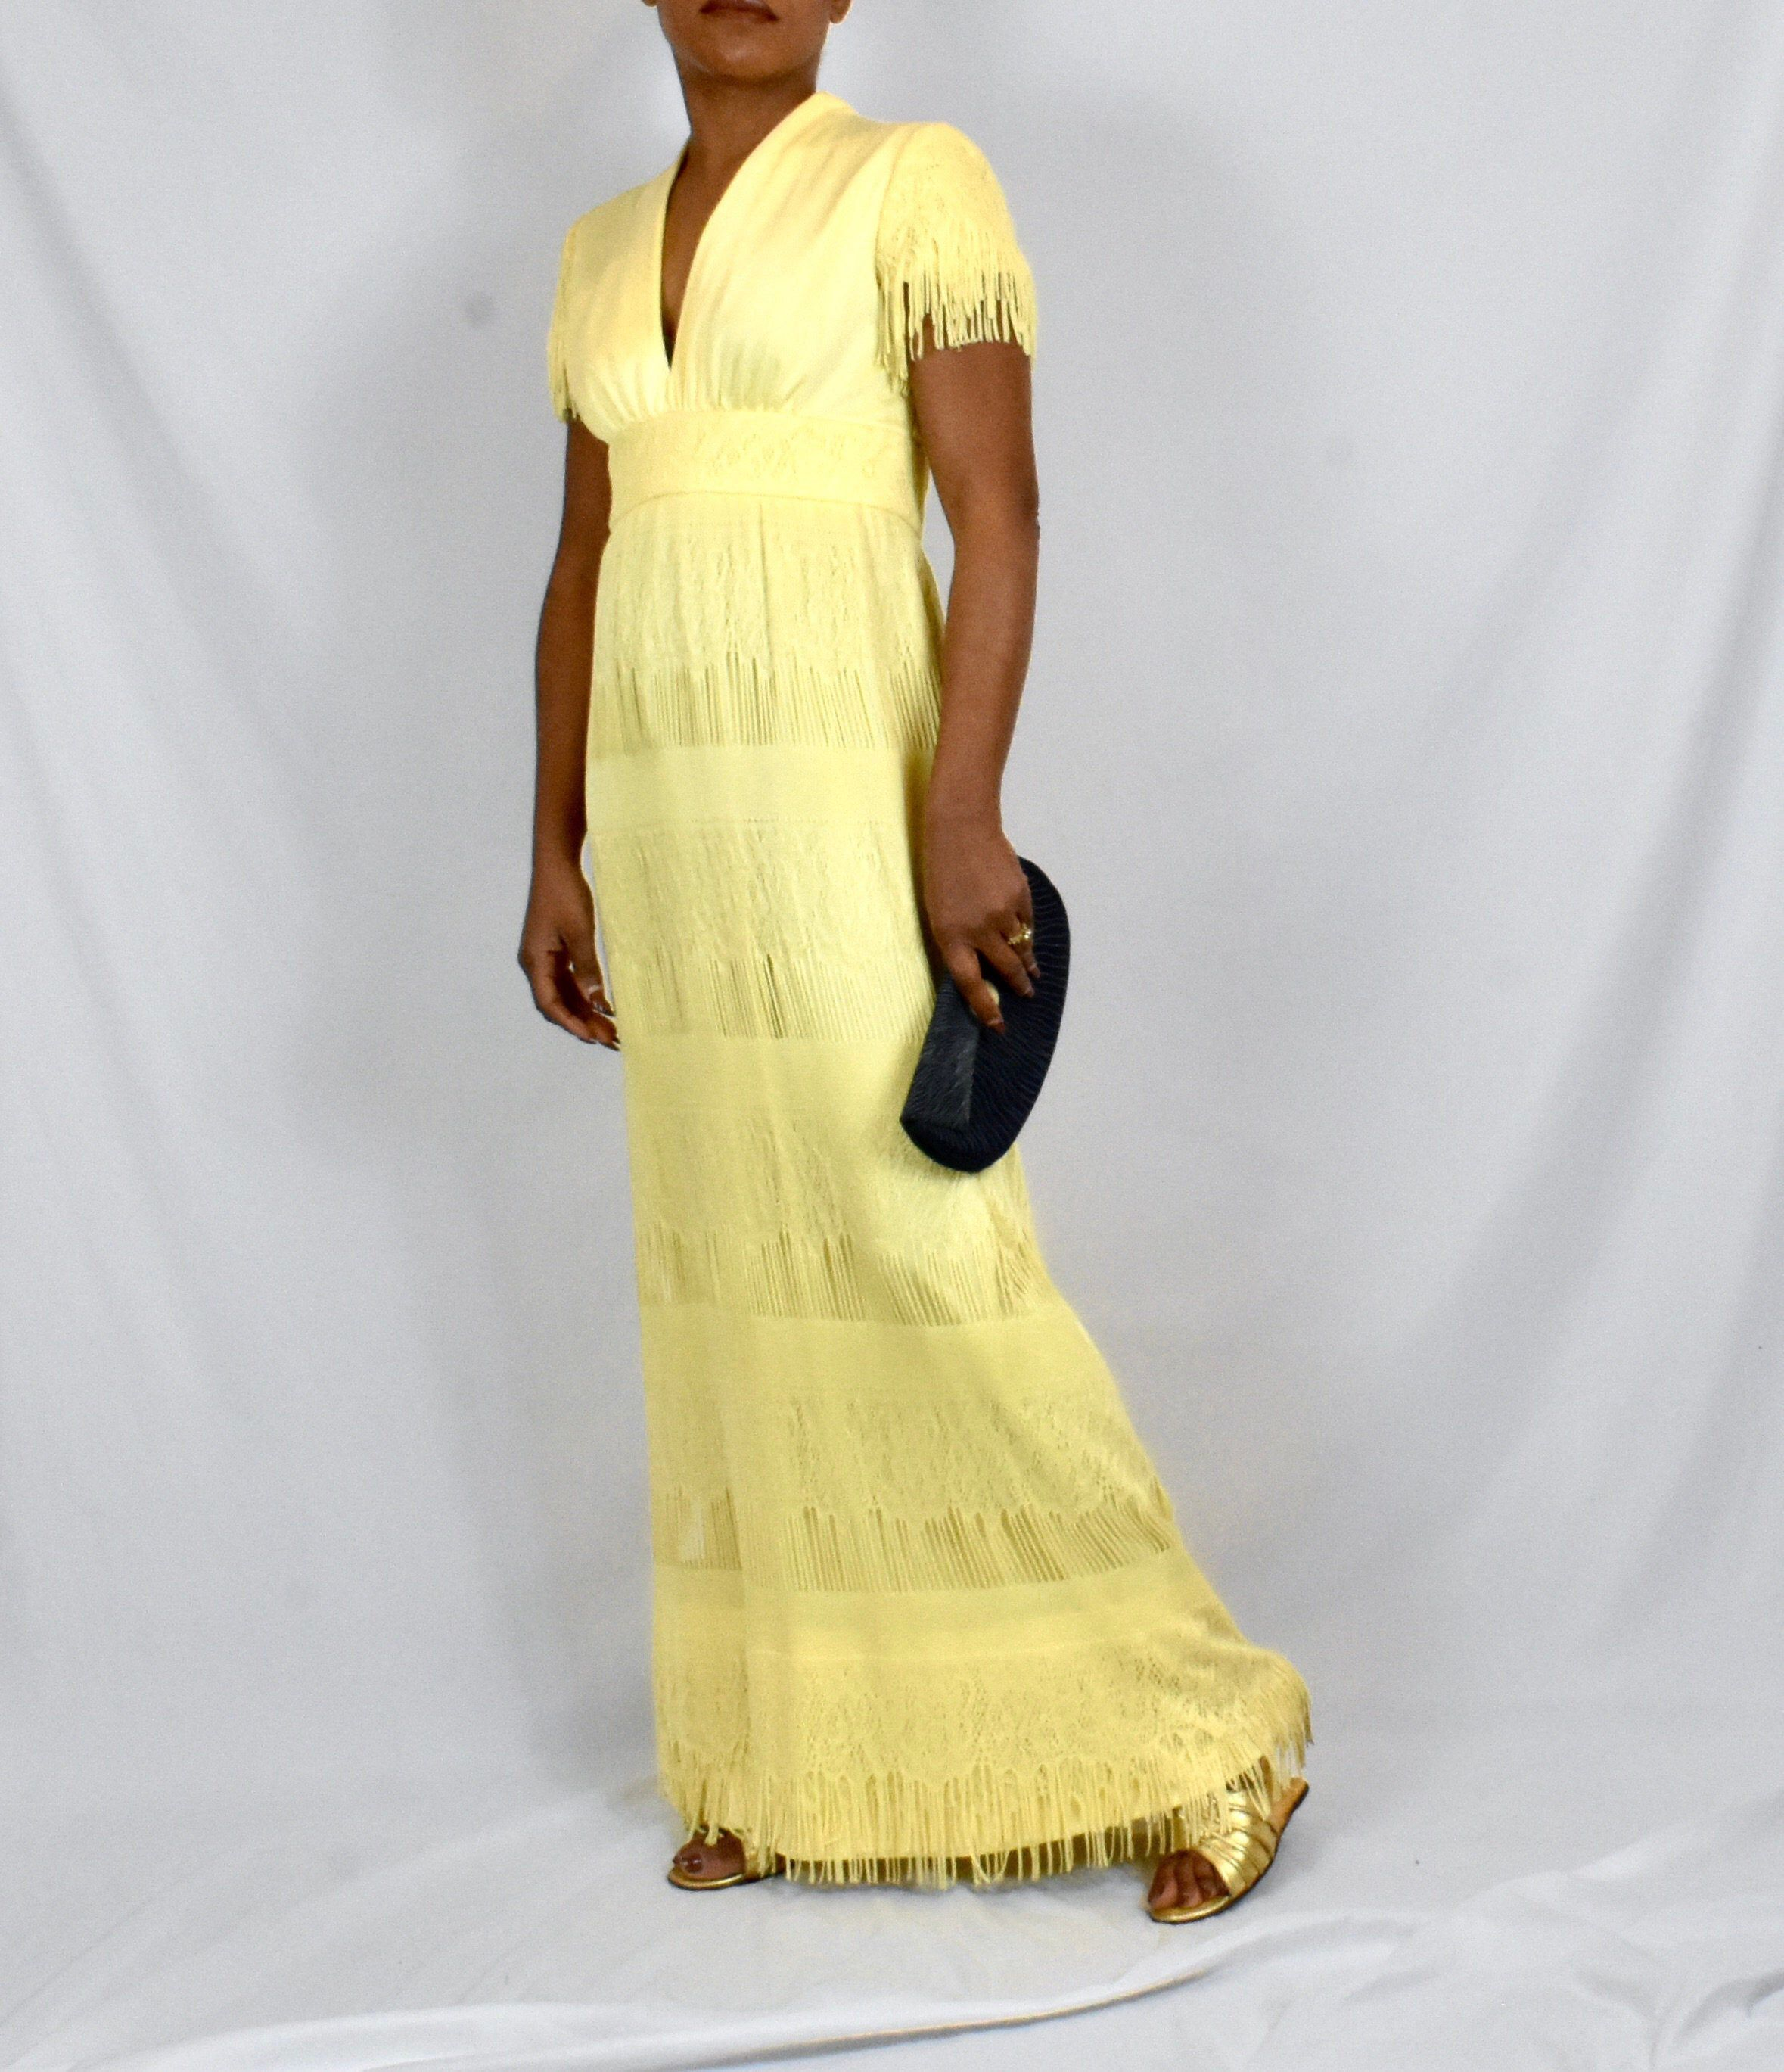 Vintage 1970s Yellow Lace Maxi Dress With Fringe In 2020 Lace Maxi Dress Lace Maxi Maxi Dress [ 2738 x 2358 Pixel ]